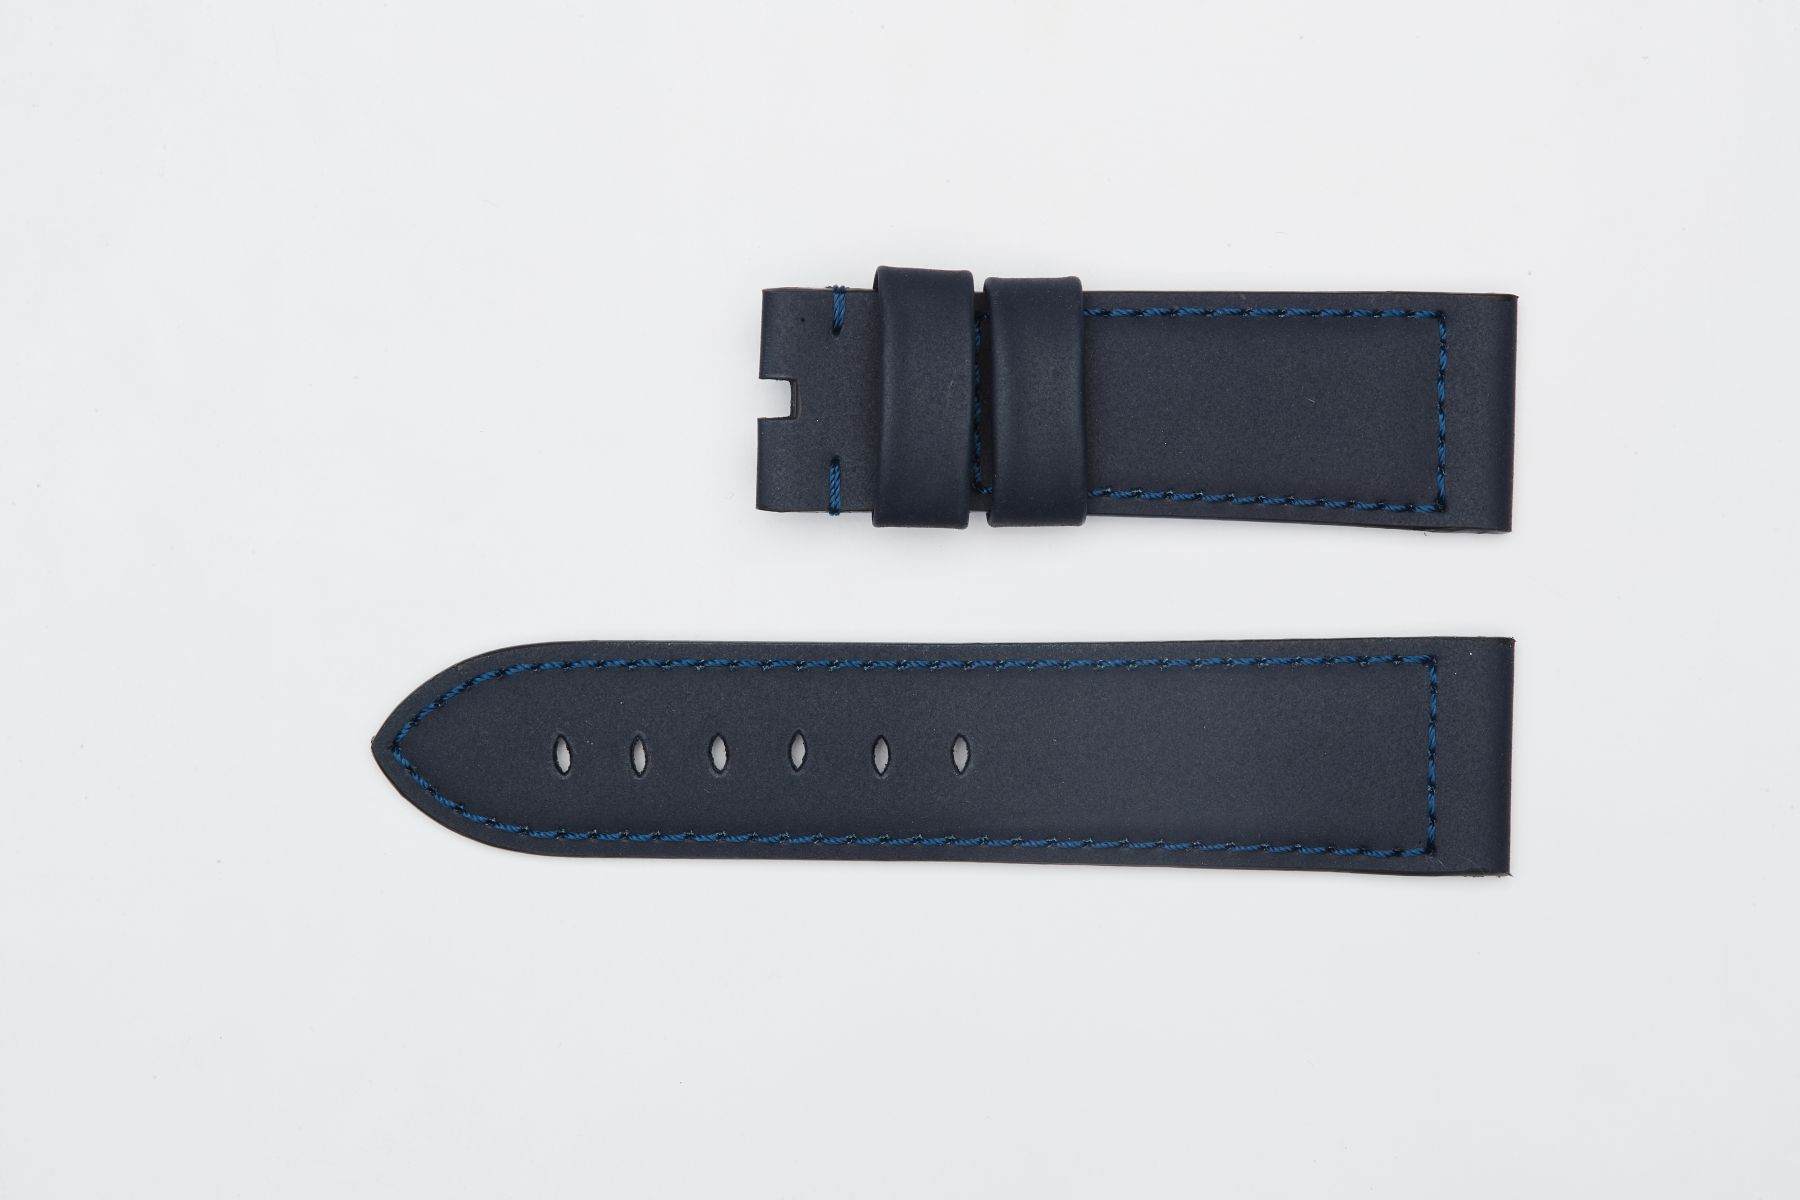 Navy Blue Recycled Rubber strap 24mm for Panerai style timepieces